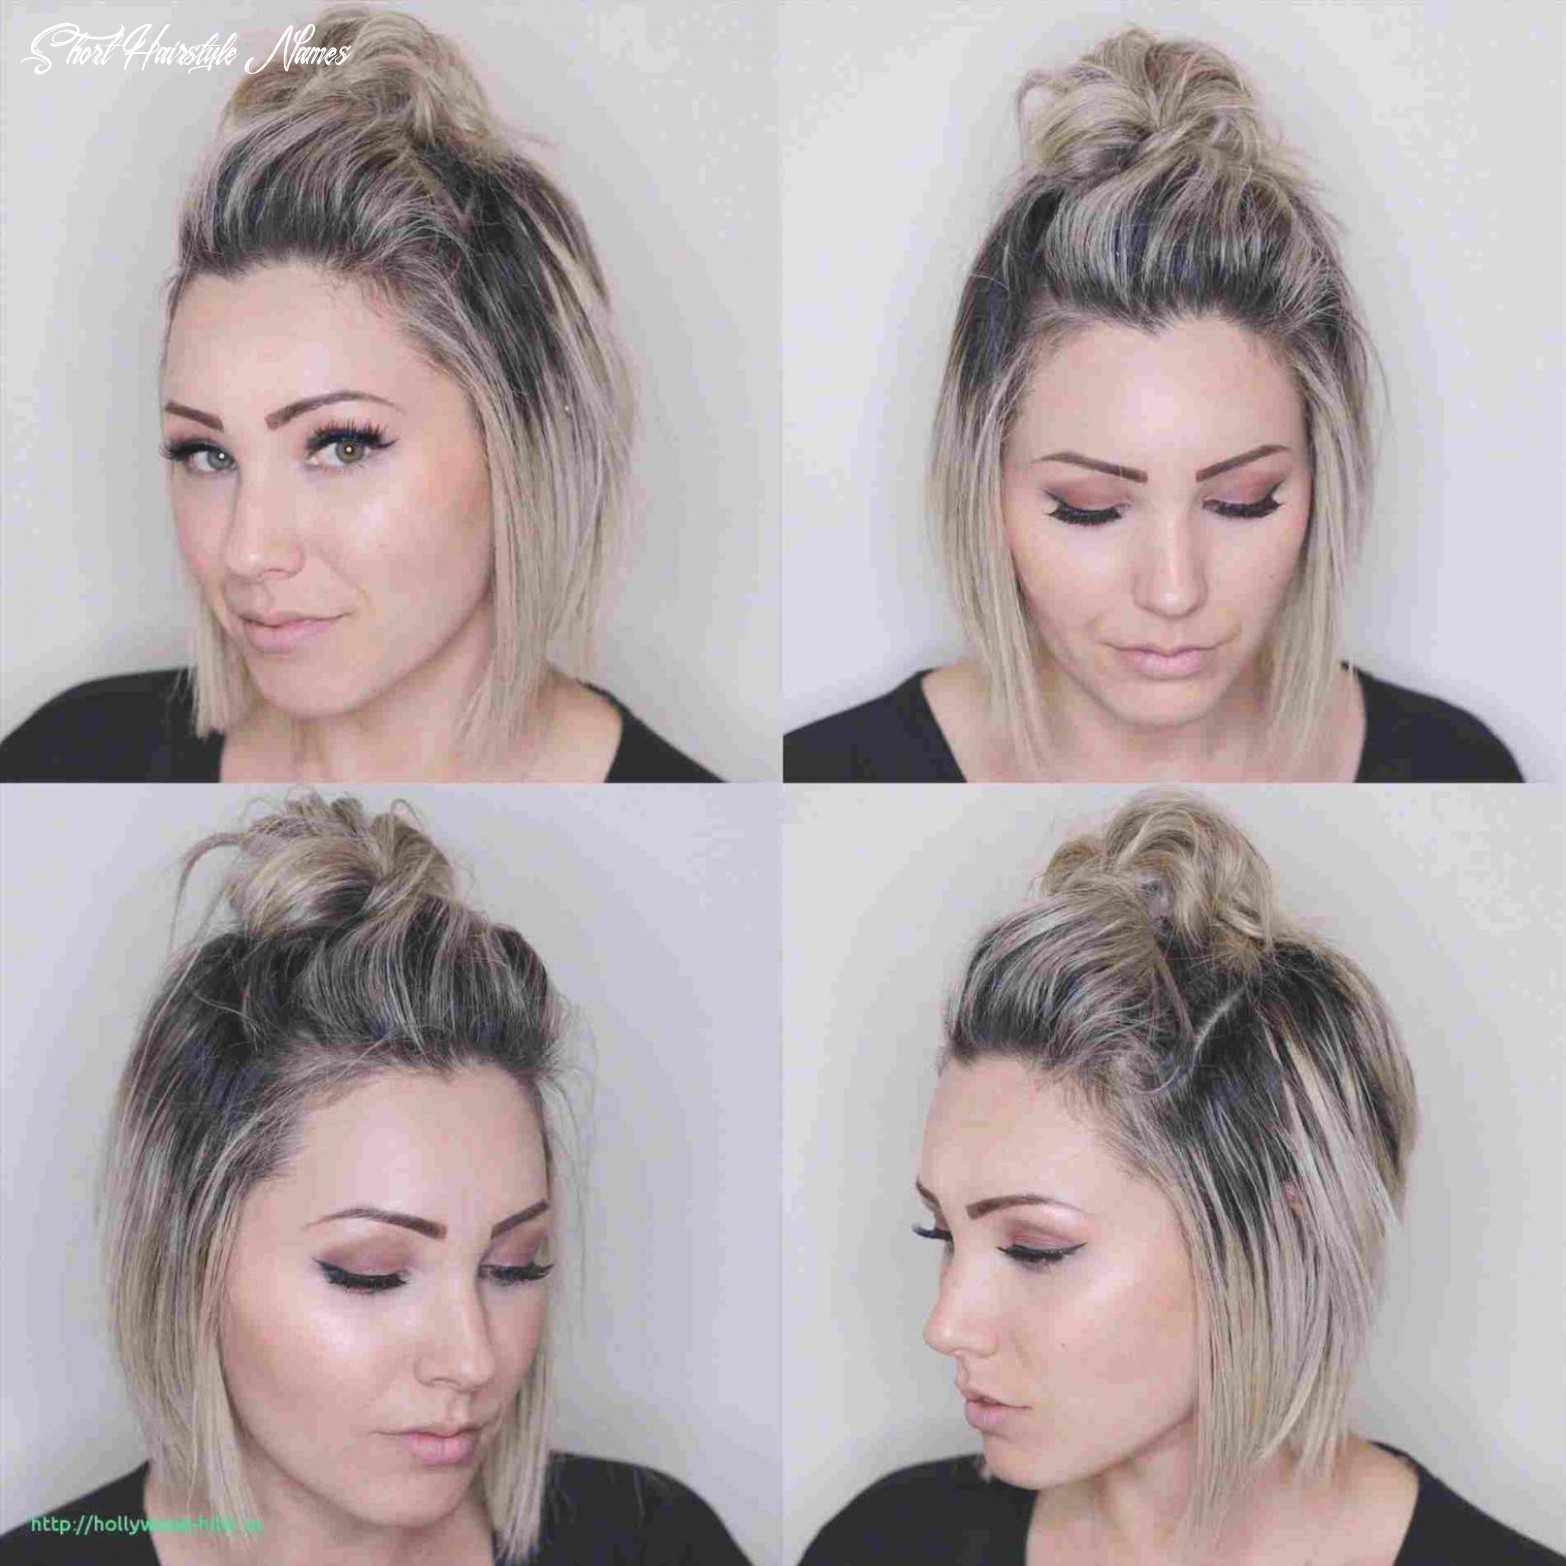 Hairstyle: short hairstyle names female short hairstyle names